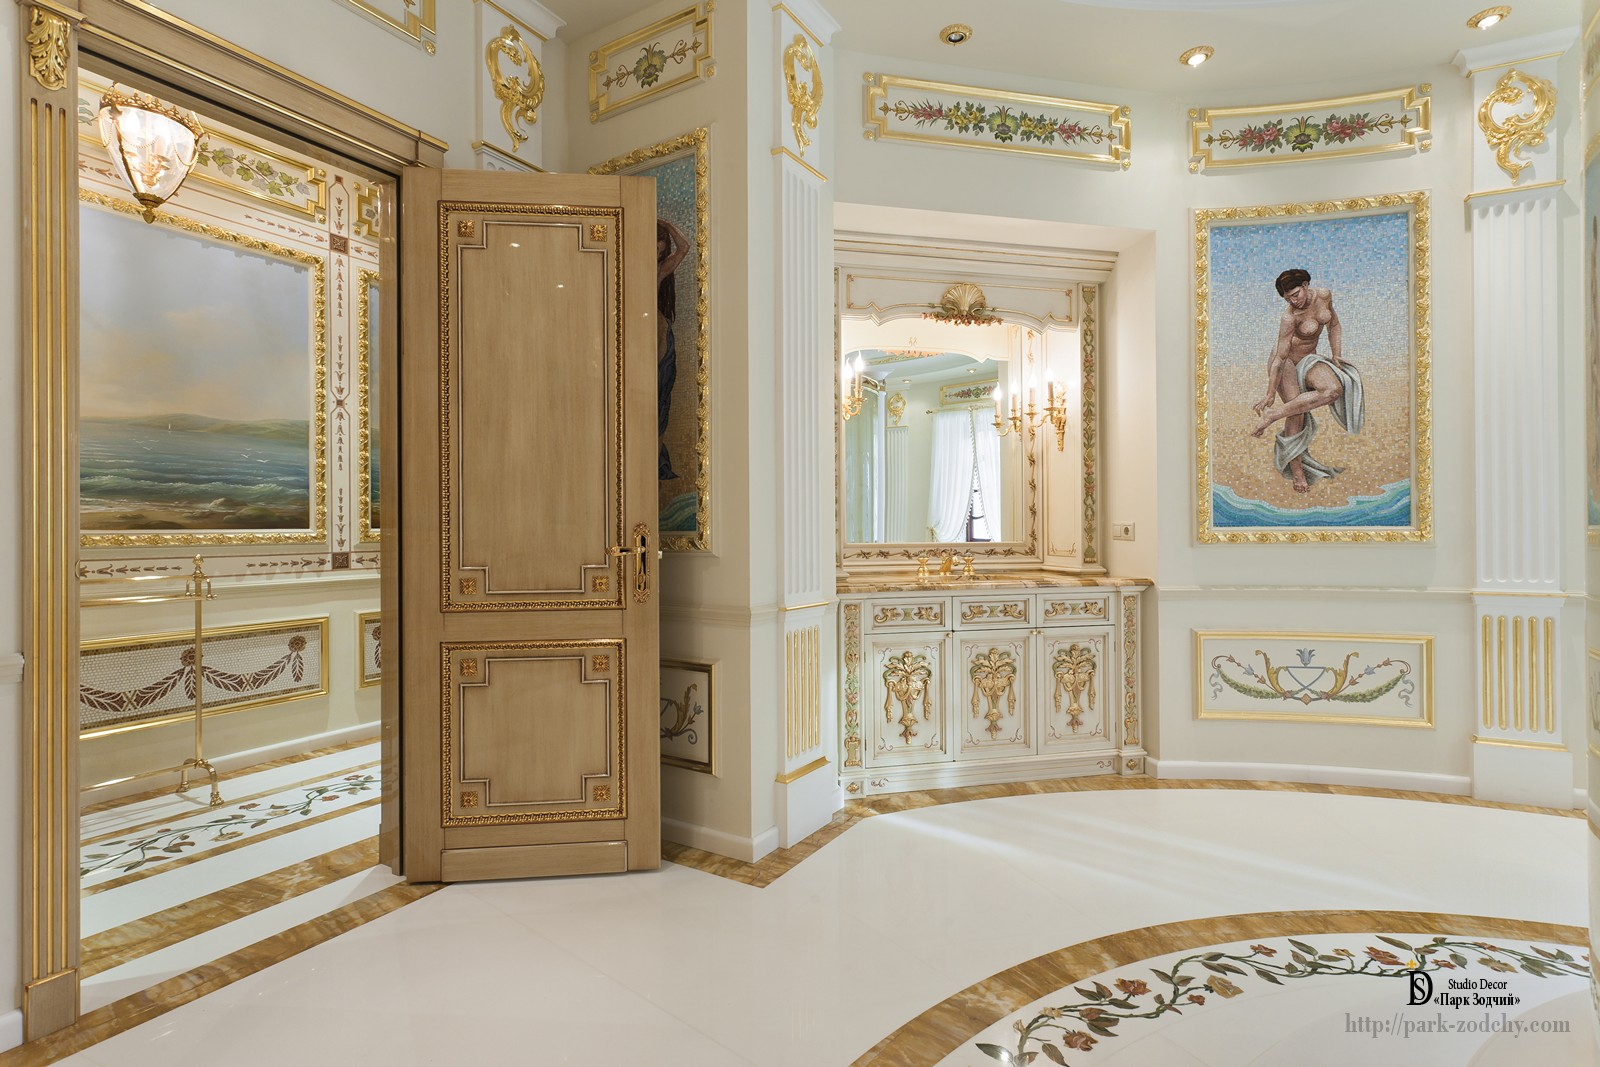 Richly decorated bathroom